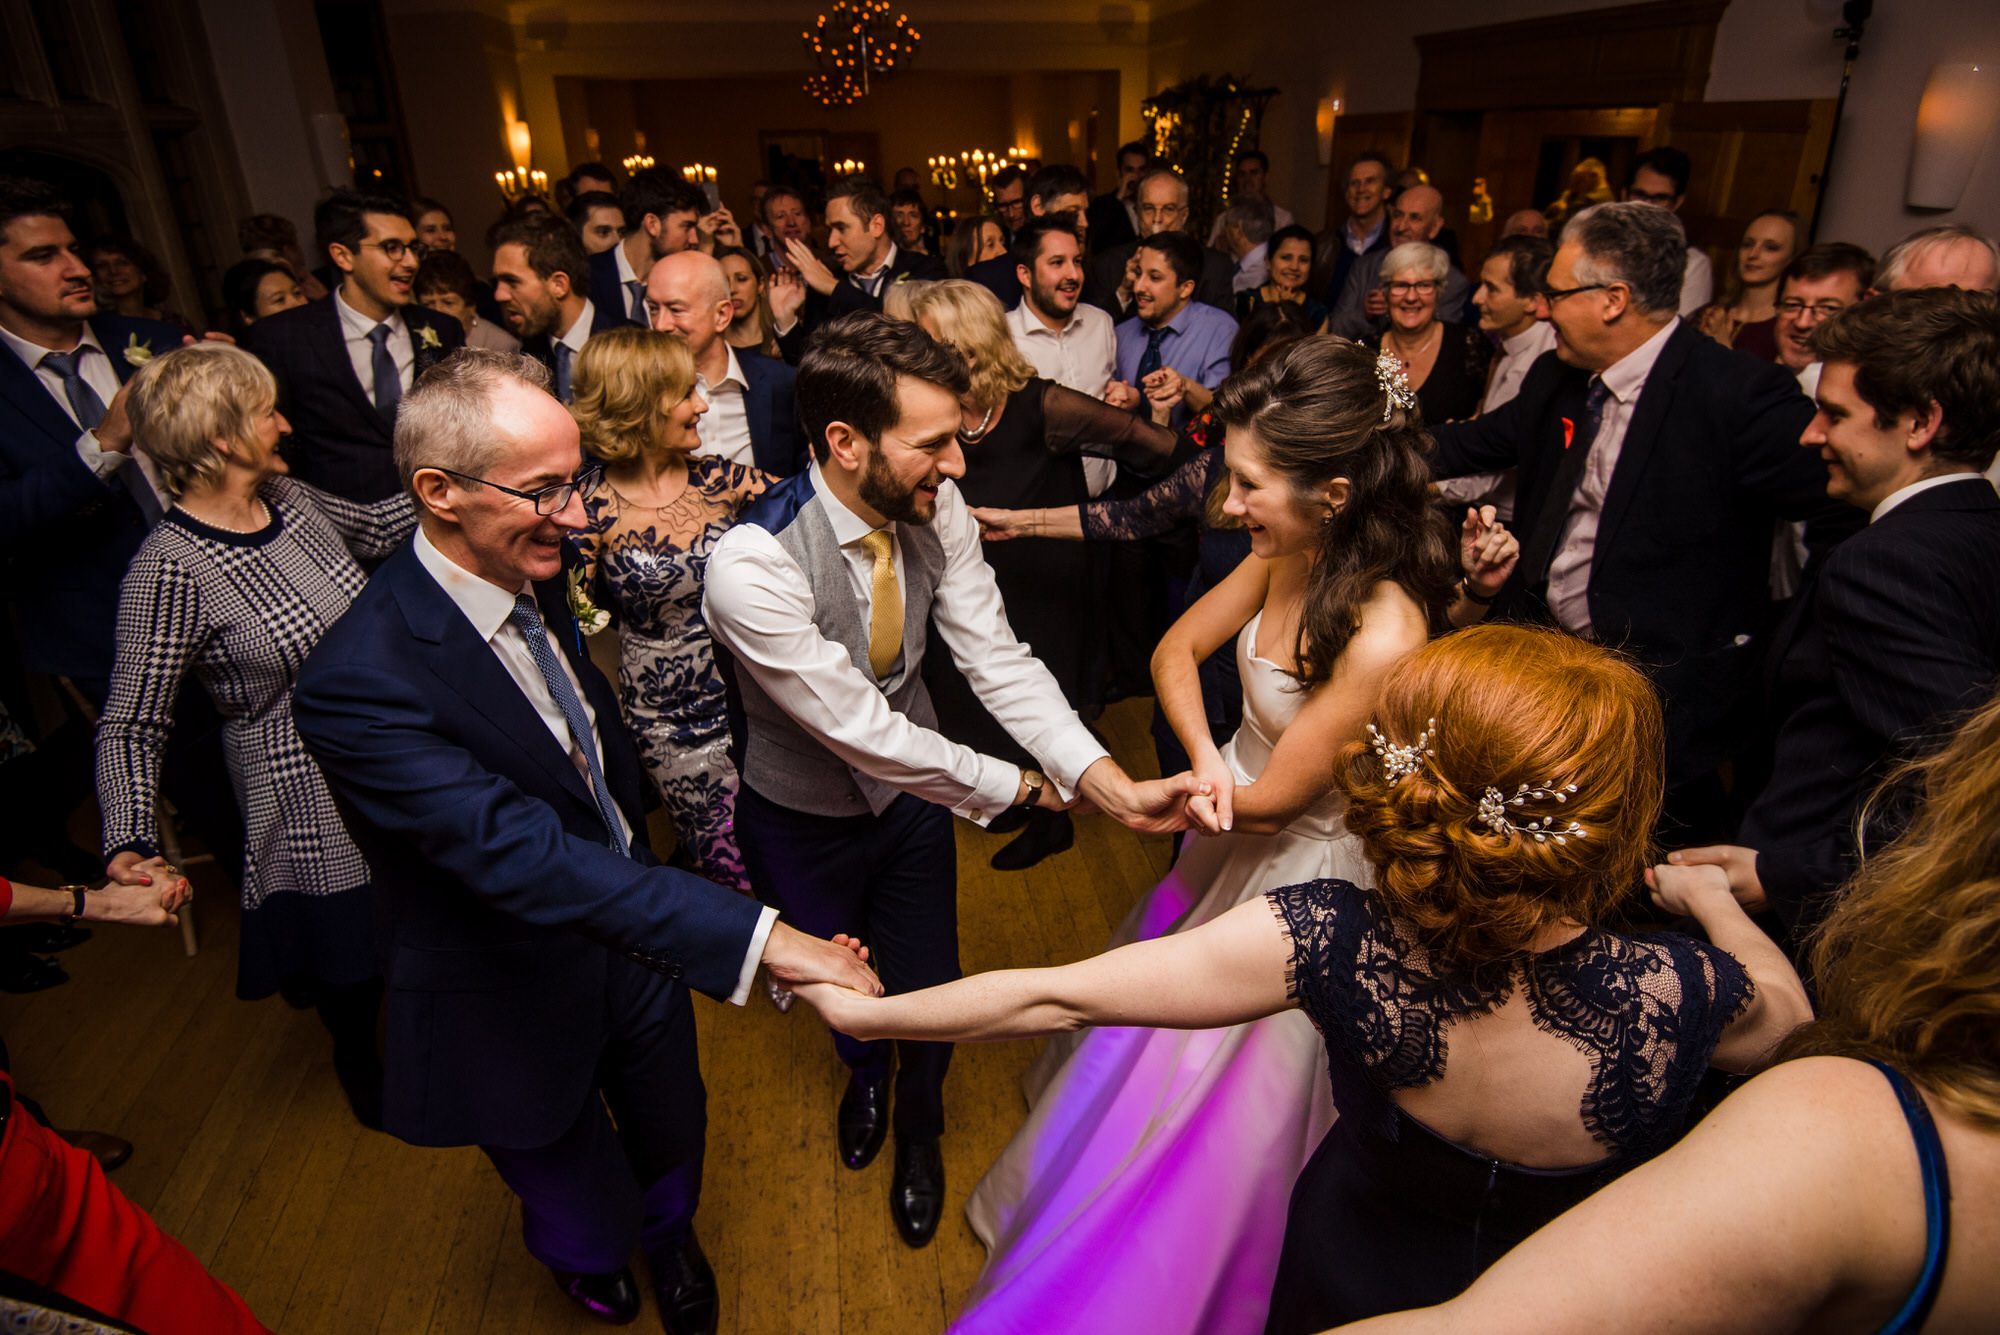 Coombe lodge wedding dancing